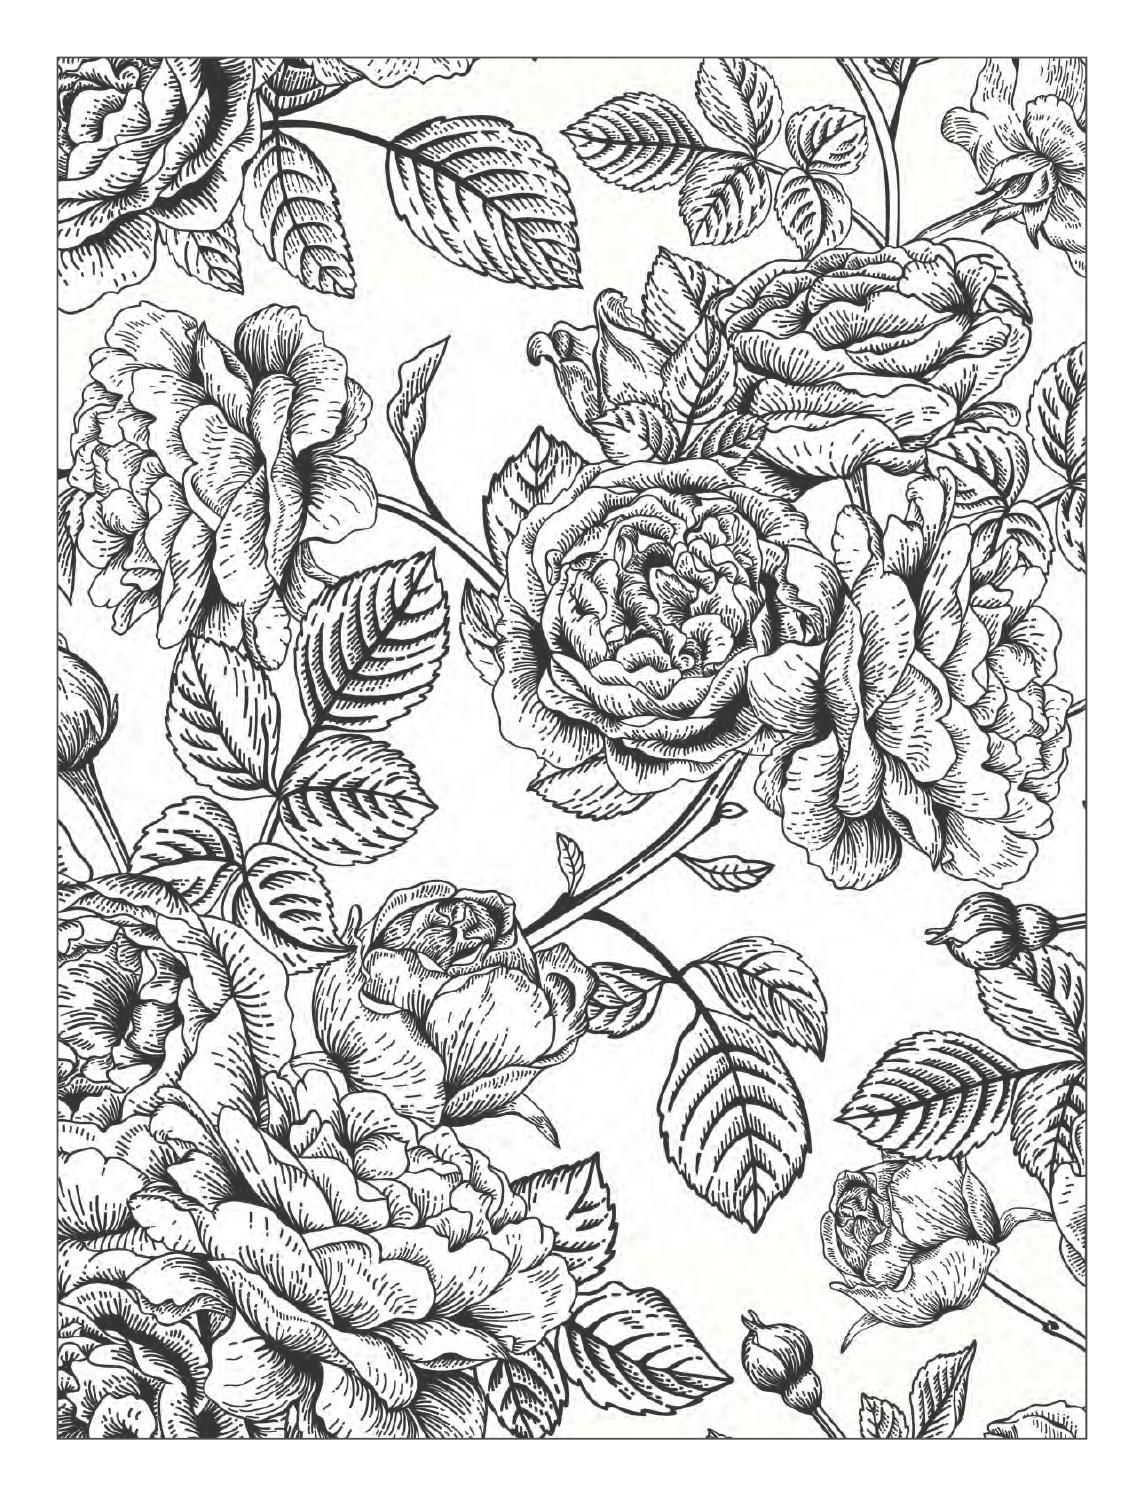 Schöne Blumen Ausmalbilder : Beautiful Flowers Detailed Floral Designs Coloring Book Preview